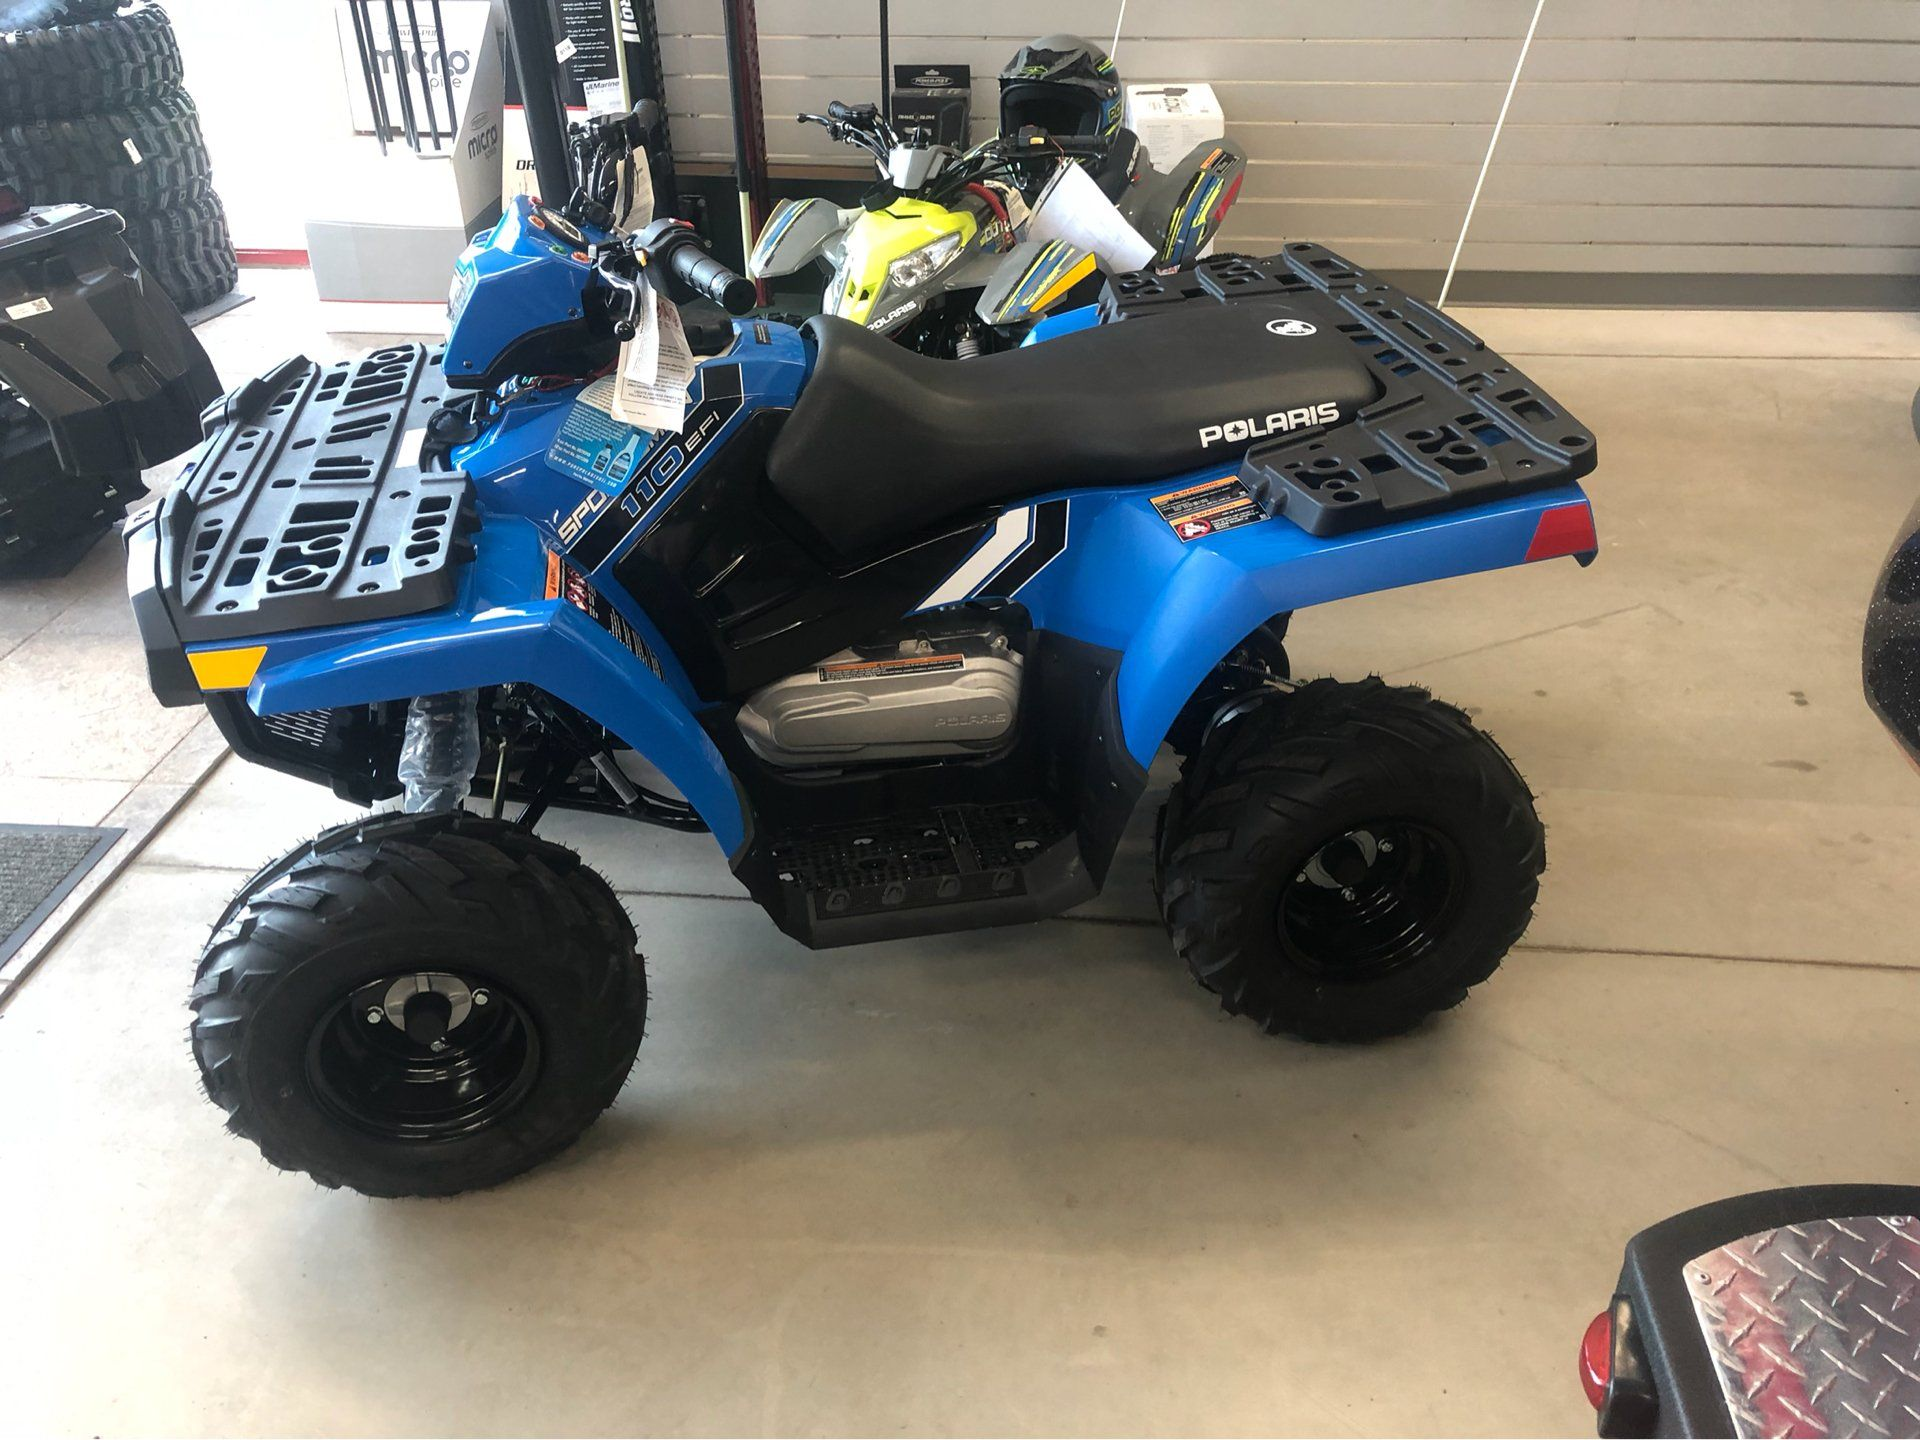 2019 Polaris Sportsman 110 EFI in Appleton, Wisconsin - Photo 2